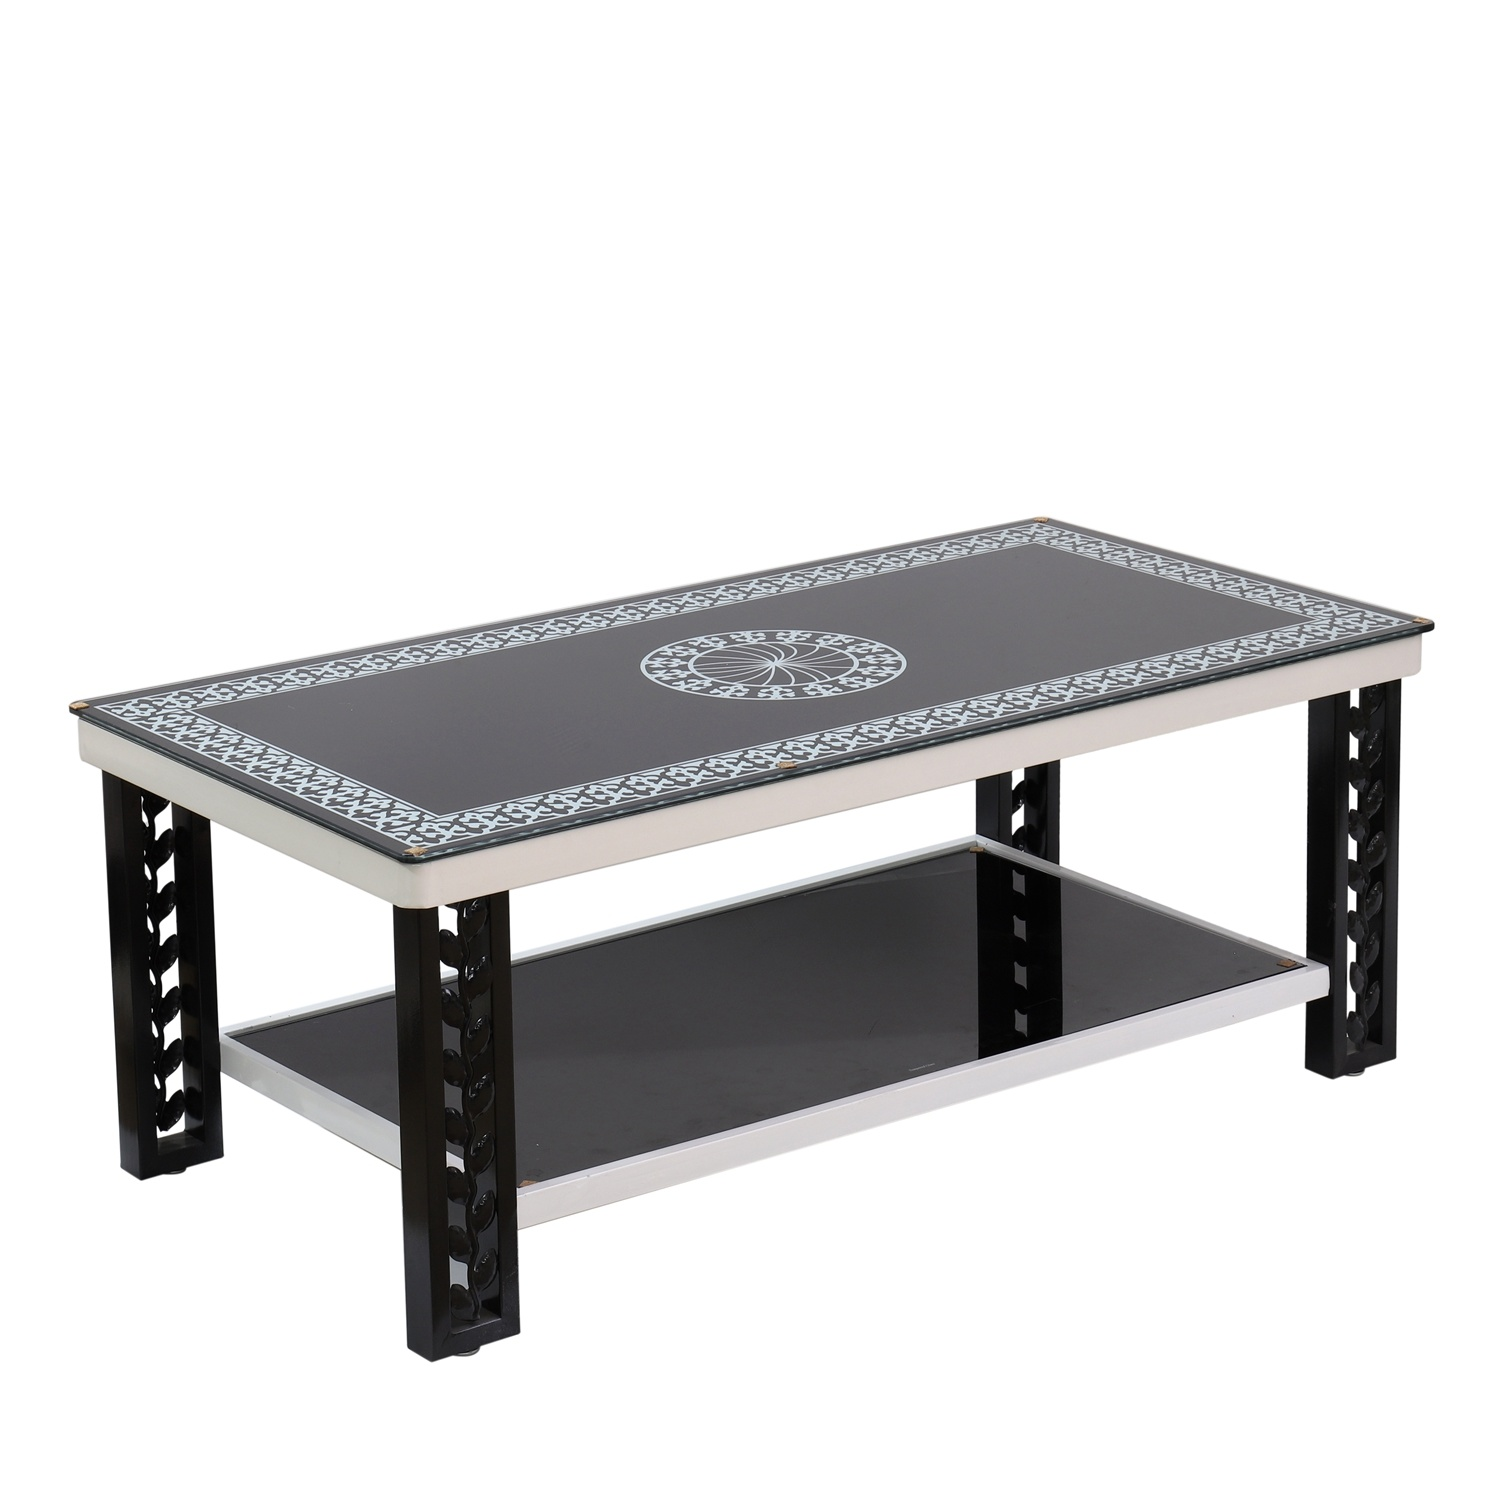 - China Tempered Glass Coffee Table Aluminum Leg New Design Brushed